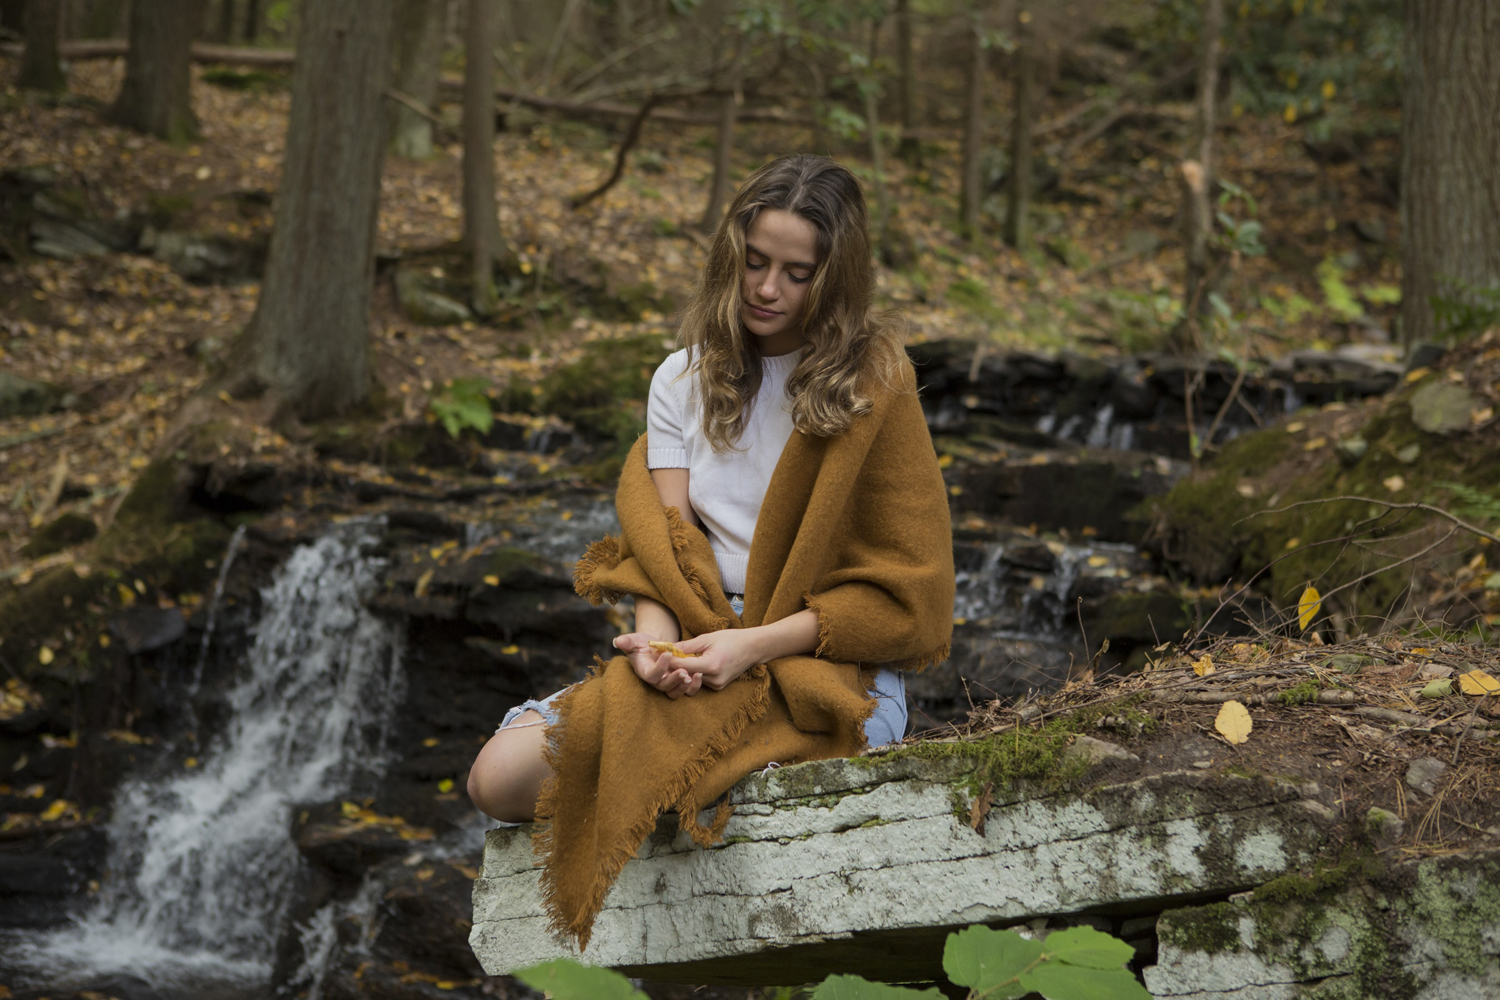 a woman wearing fall outfit, sitting in the forest